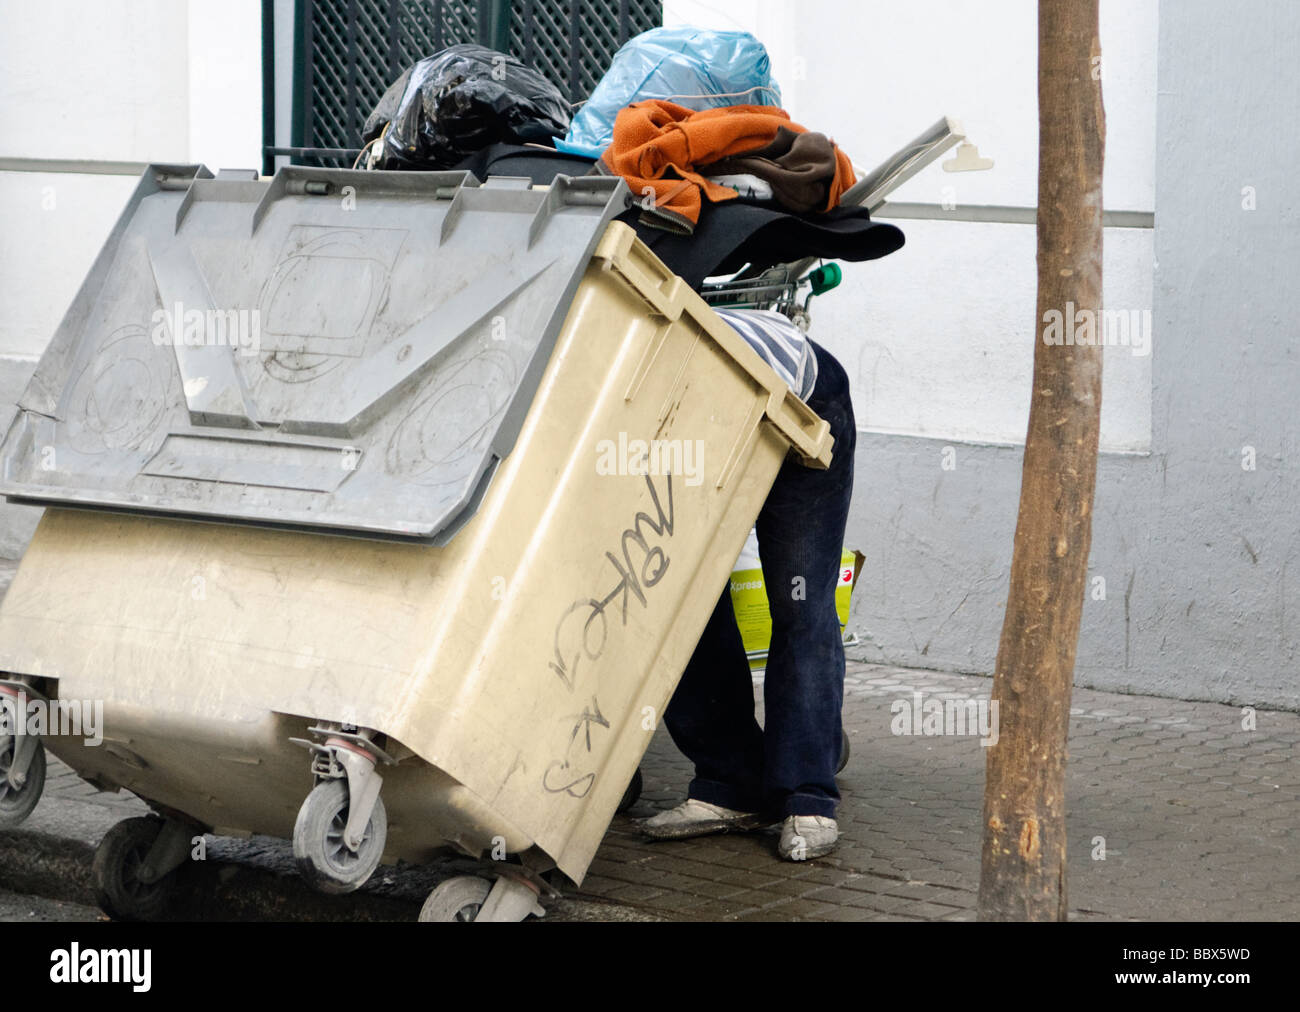 man dives into  garbage container in search for food in street in Sevilla, Andalucia, Spain - Stock Image